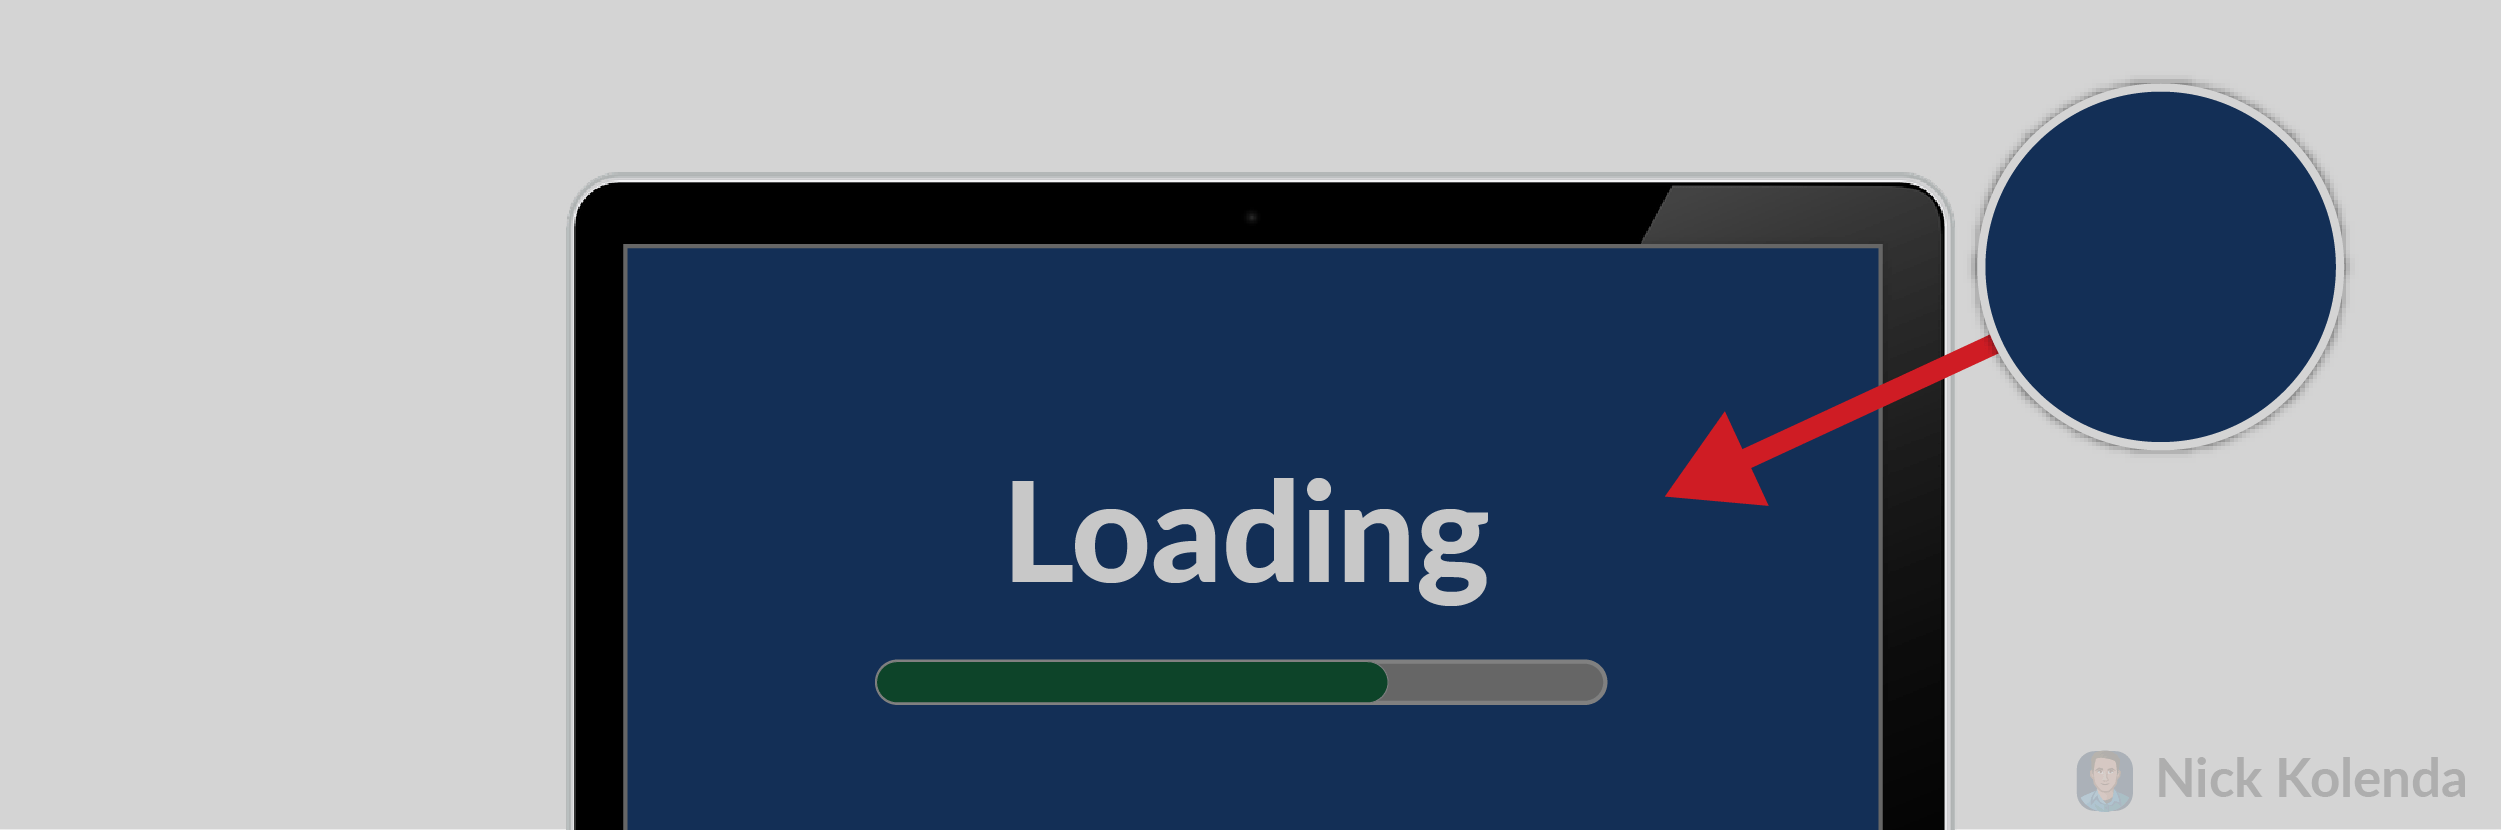 Blue background of loading screen